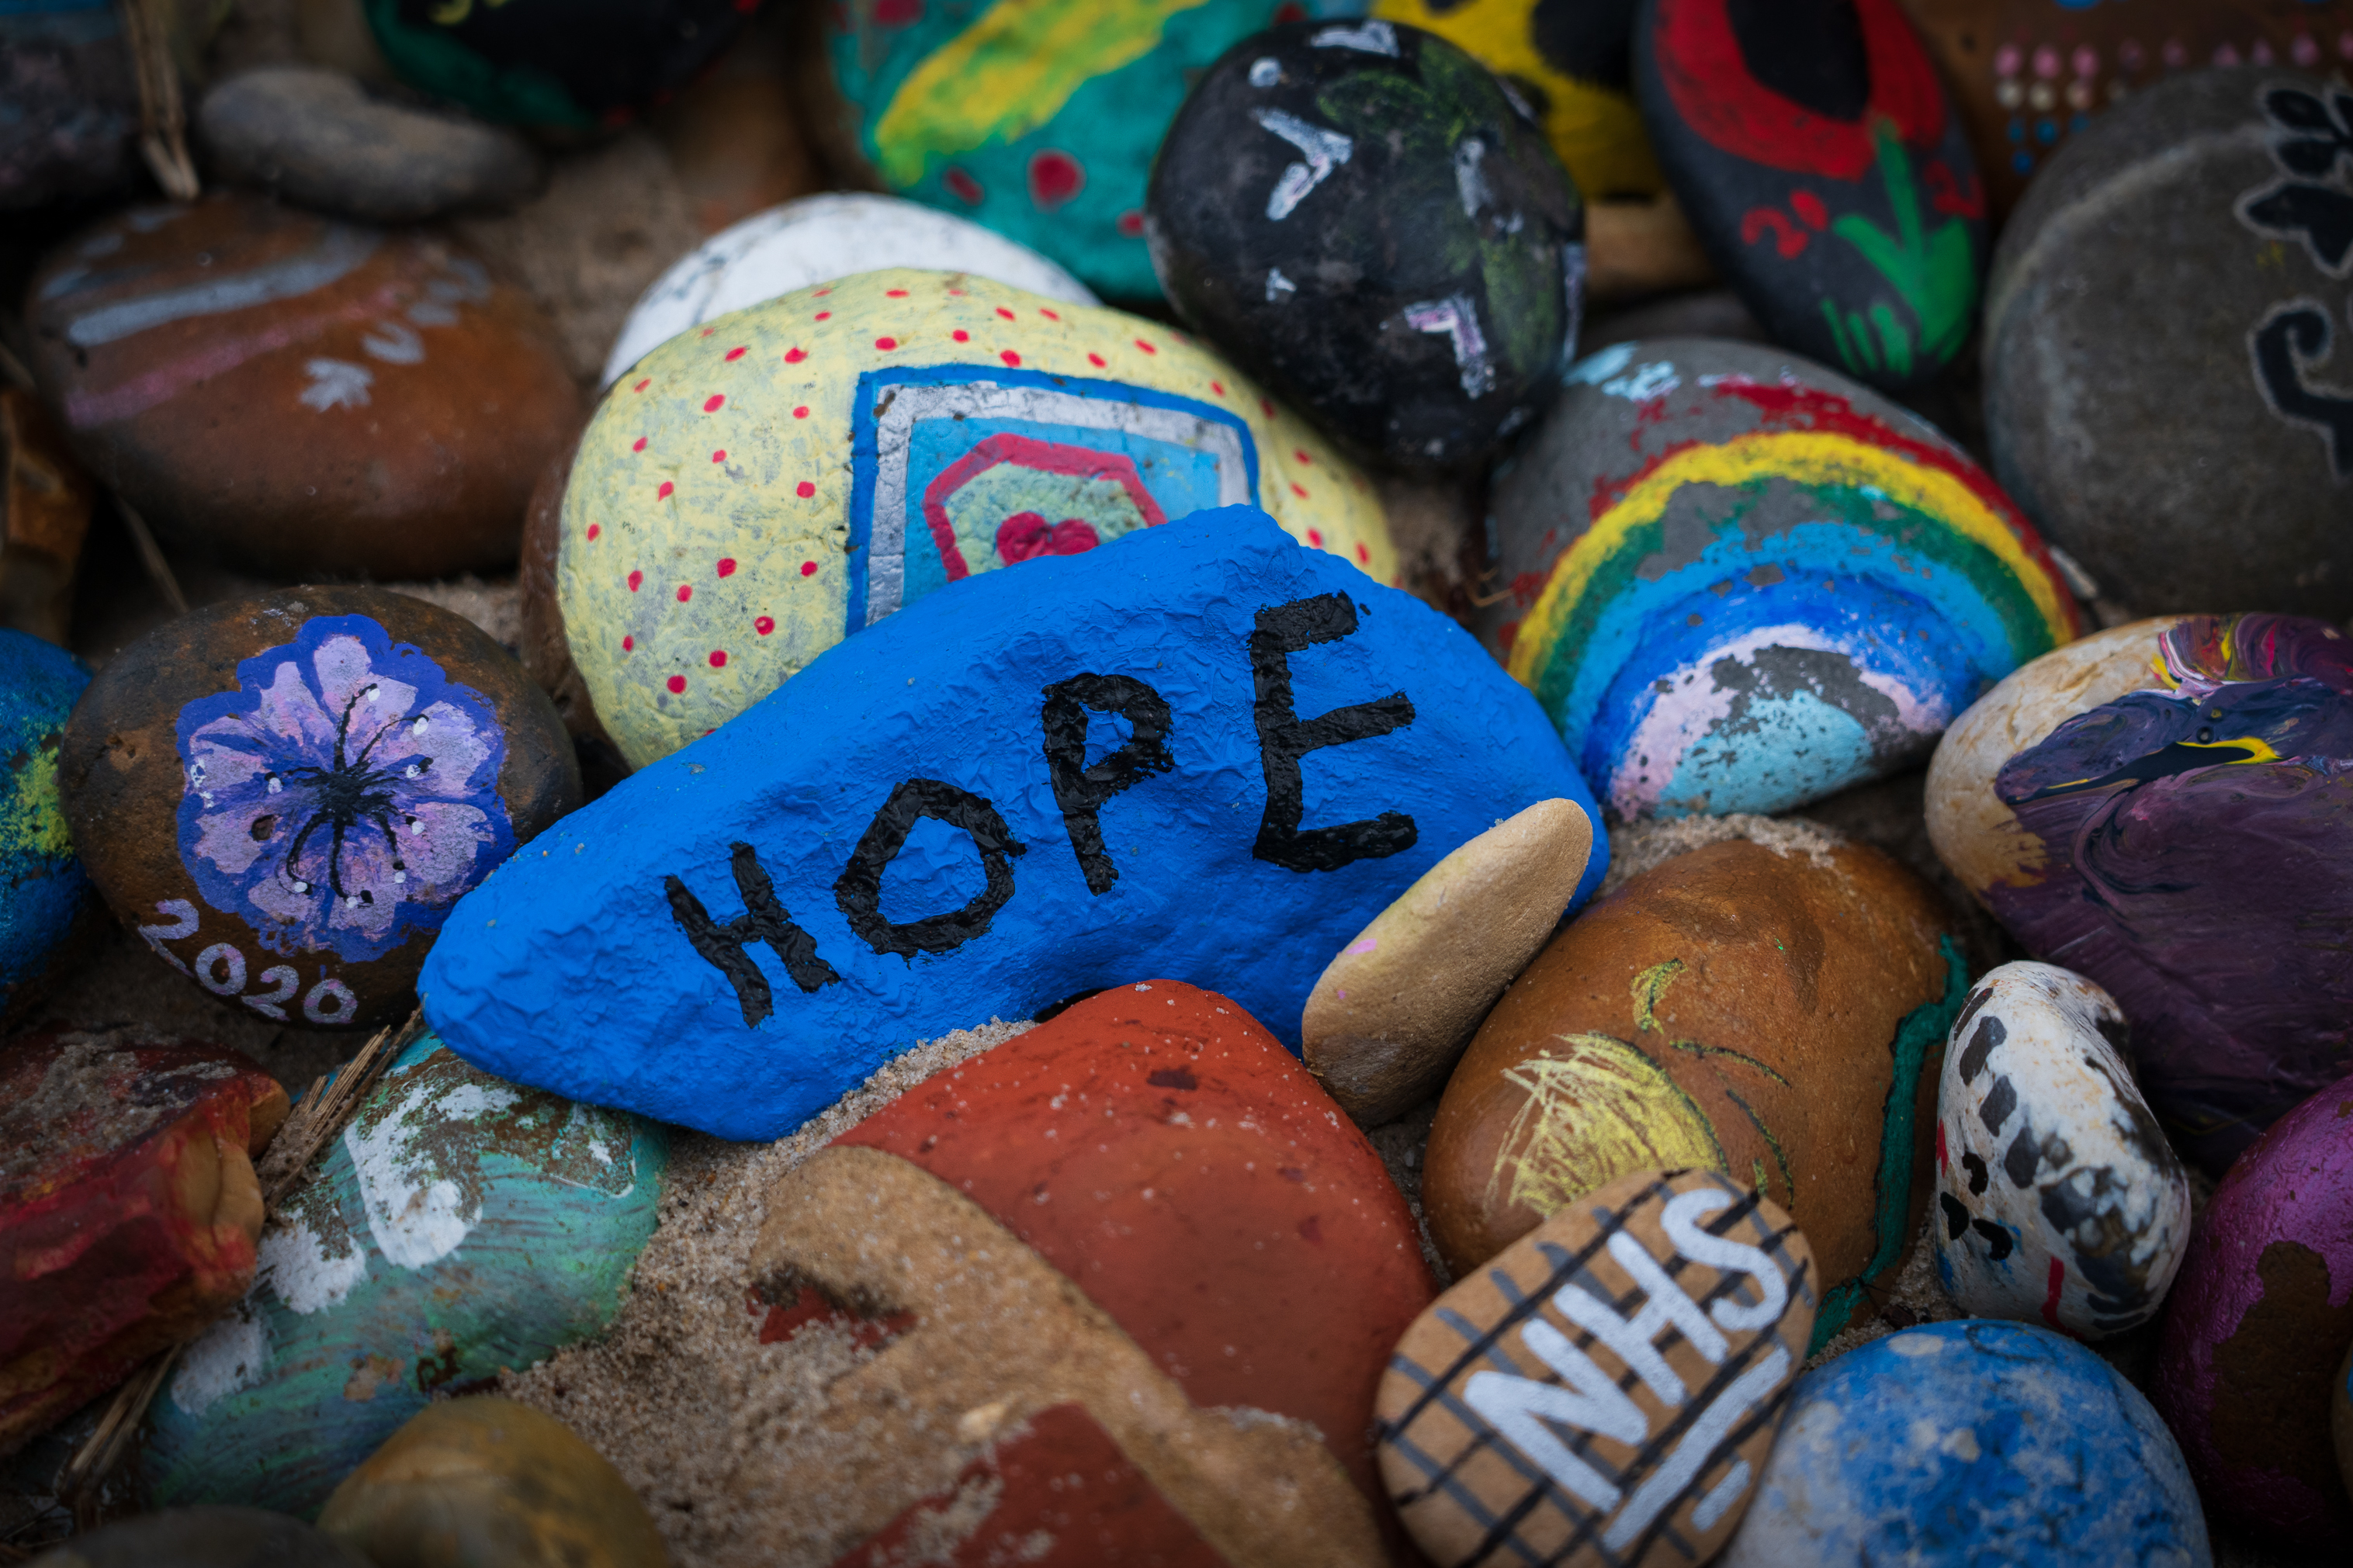 A pebble painted blue, with the word hope written on it in black.